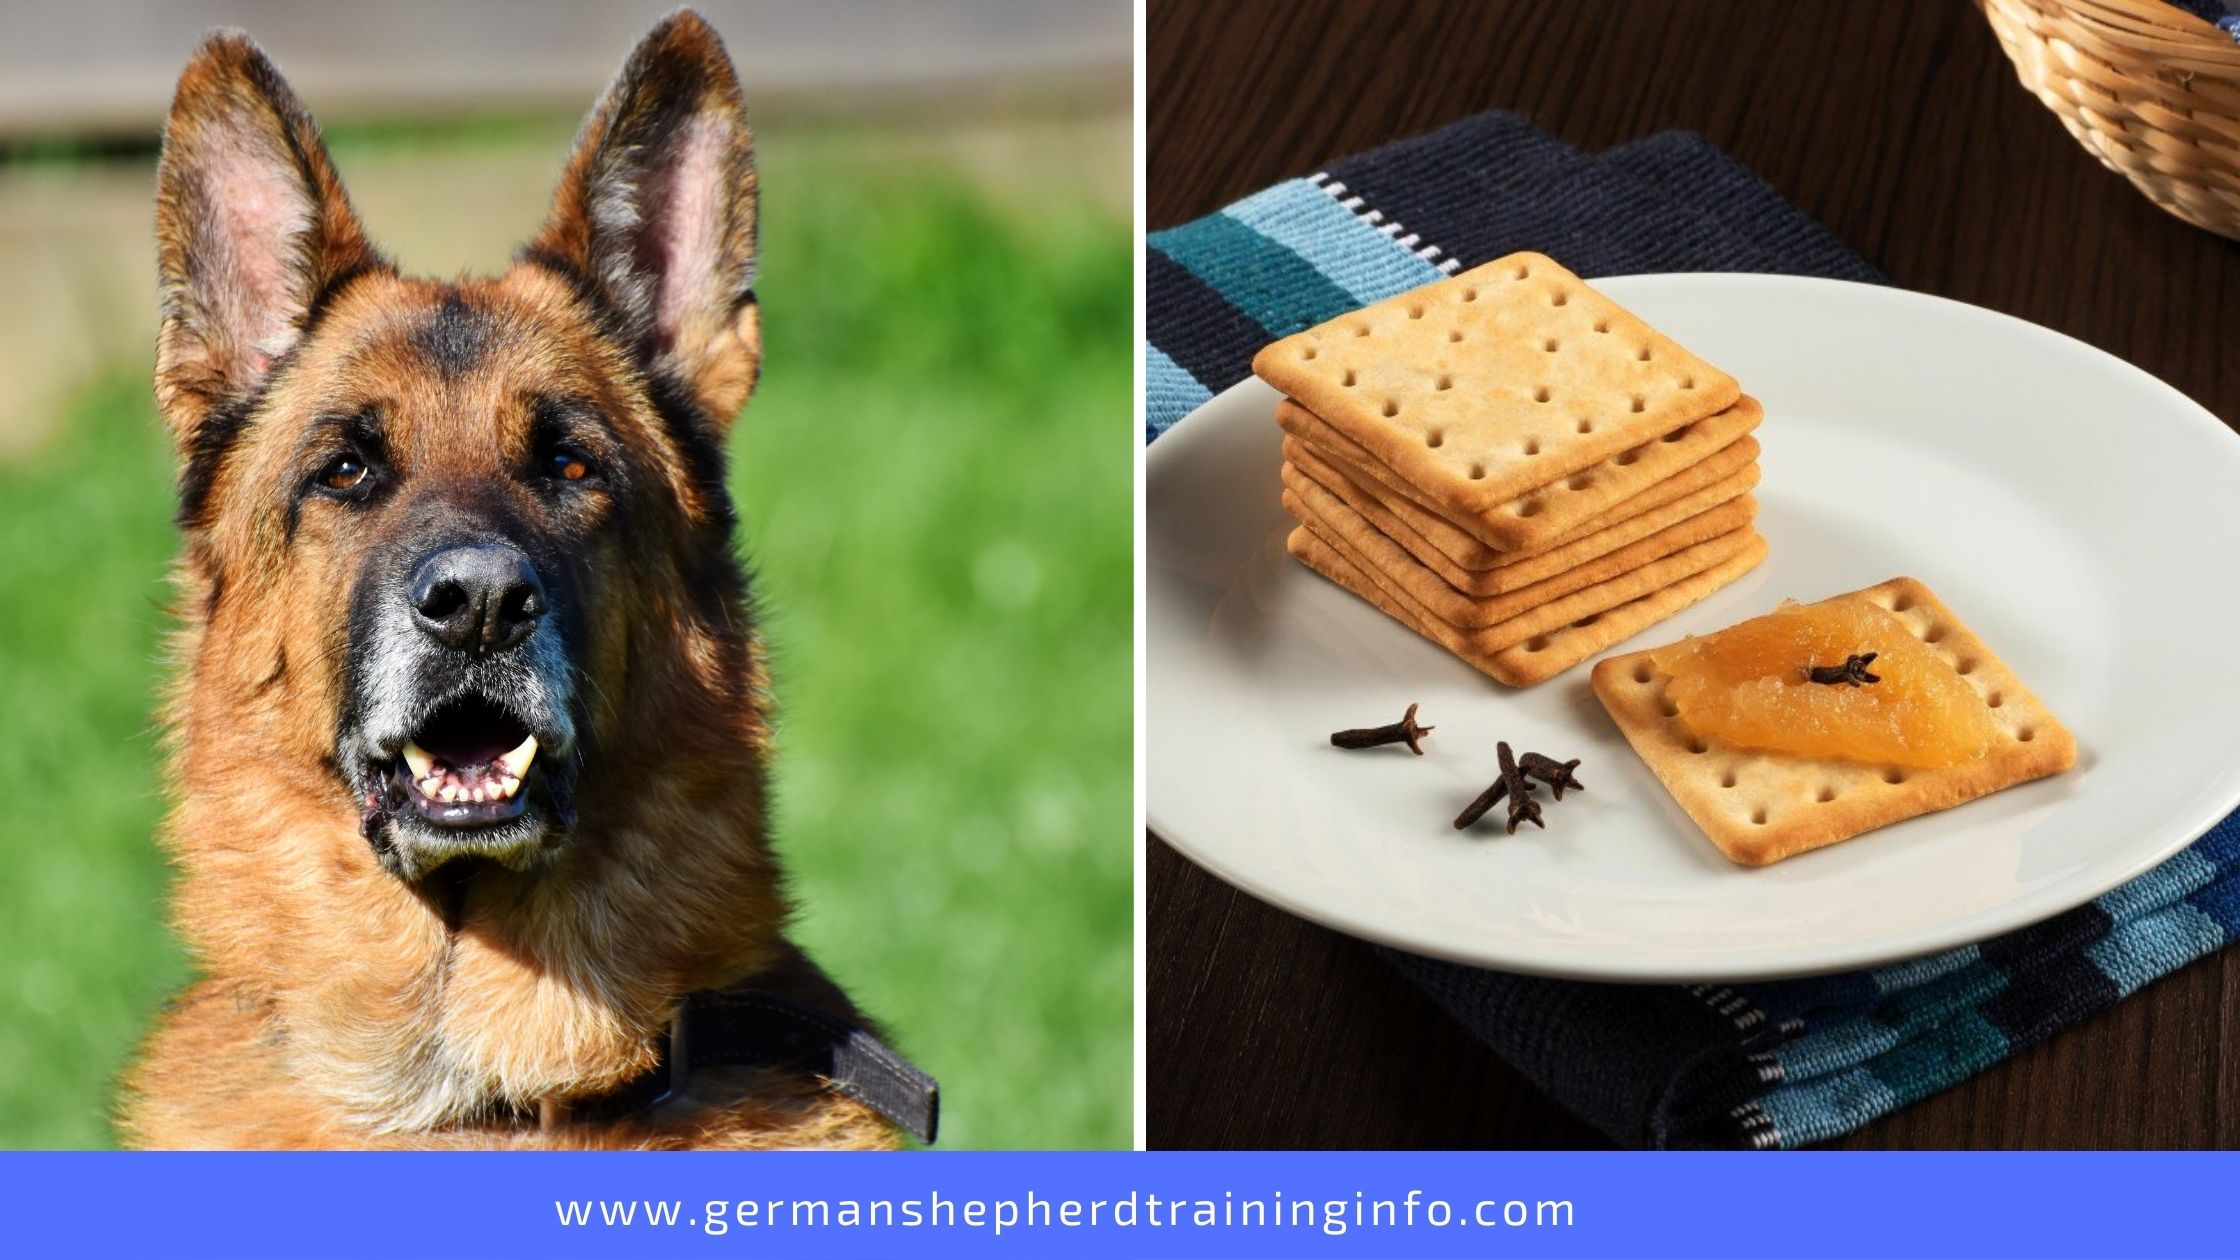 Can dogs eat peanut butter crackers?